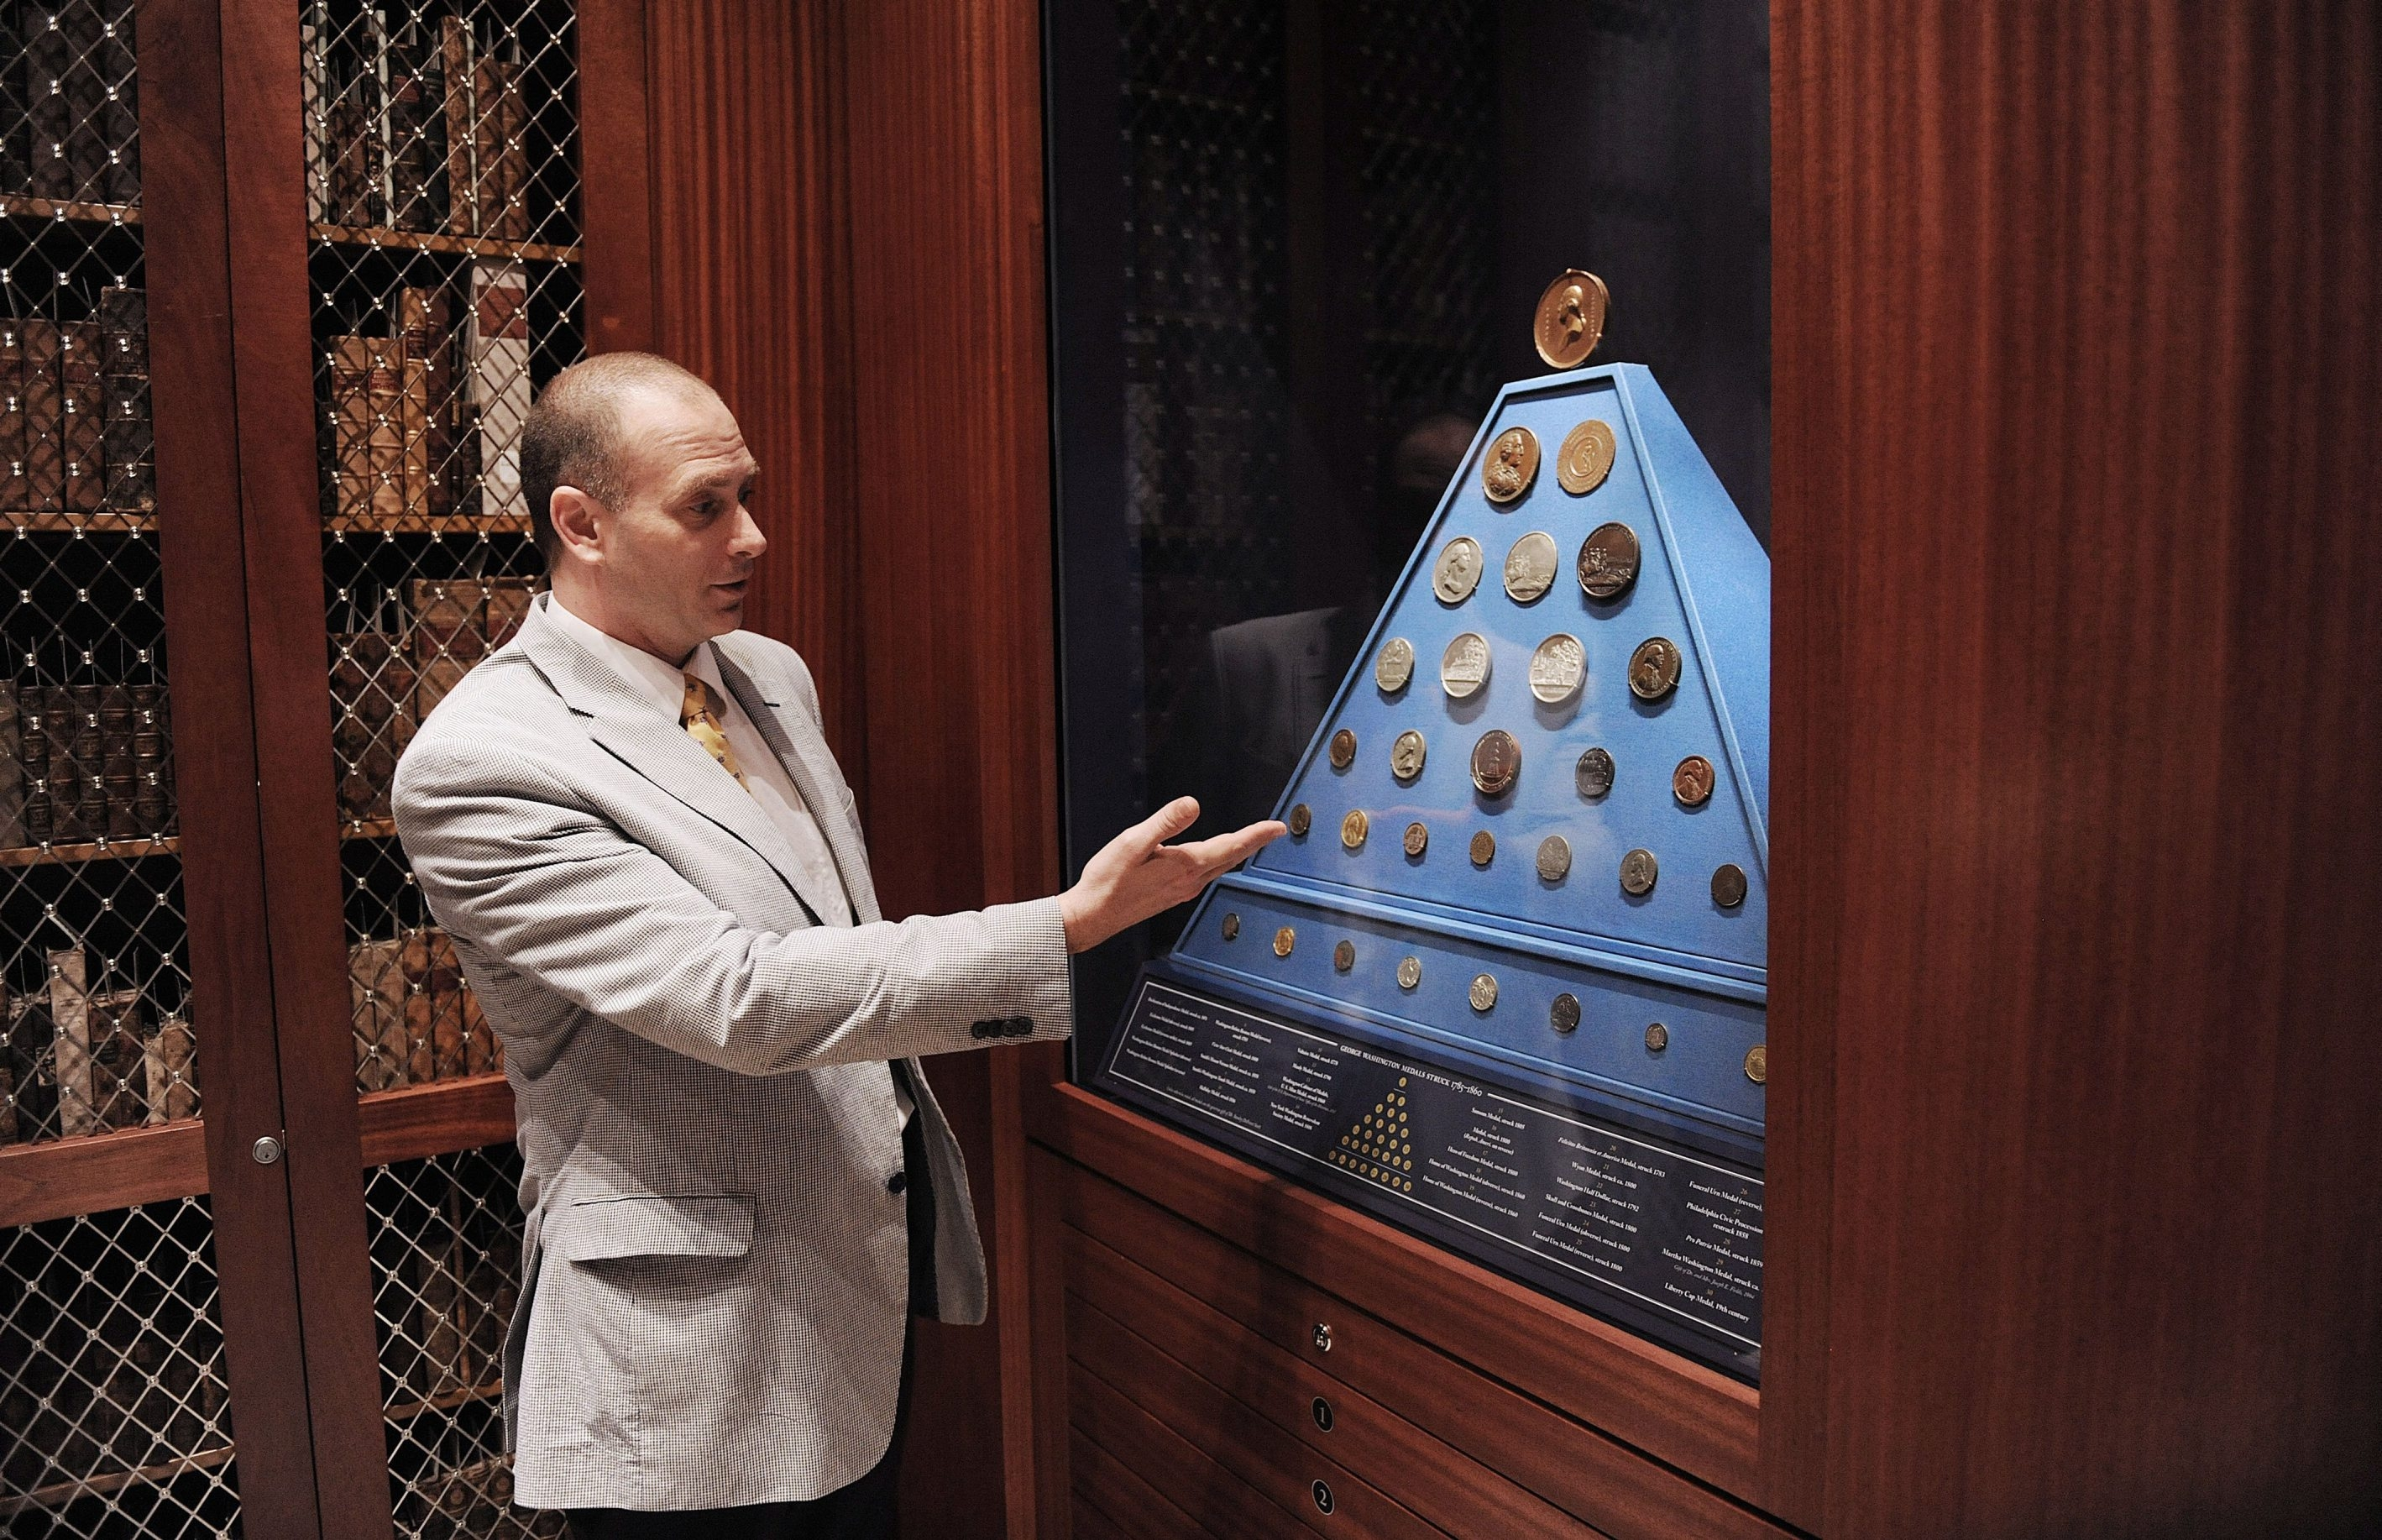 Librarian Mark Santangelo shows Washington's medals at the George Washington Library in Virginia. The facility adds a scholarly element to the understanding of the first president.